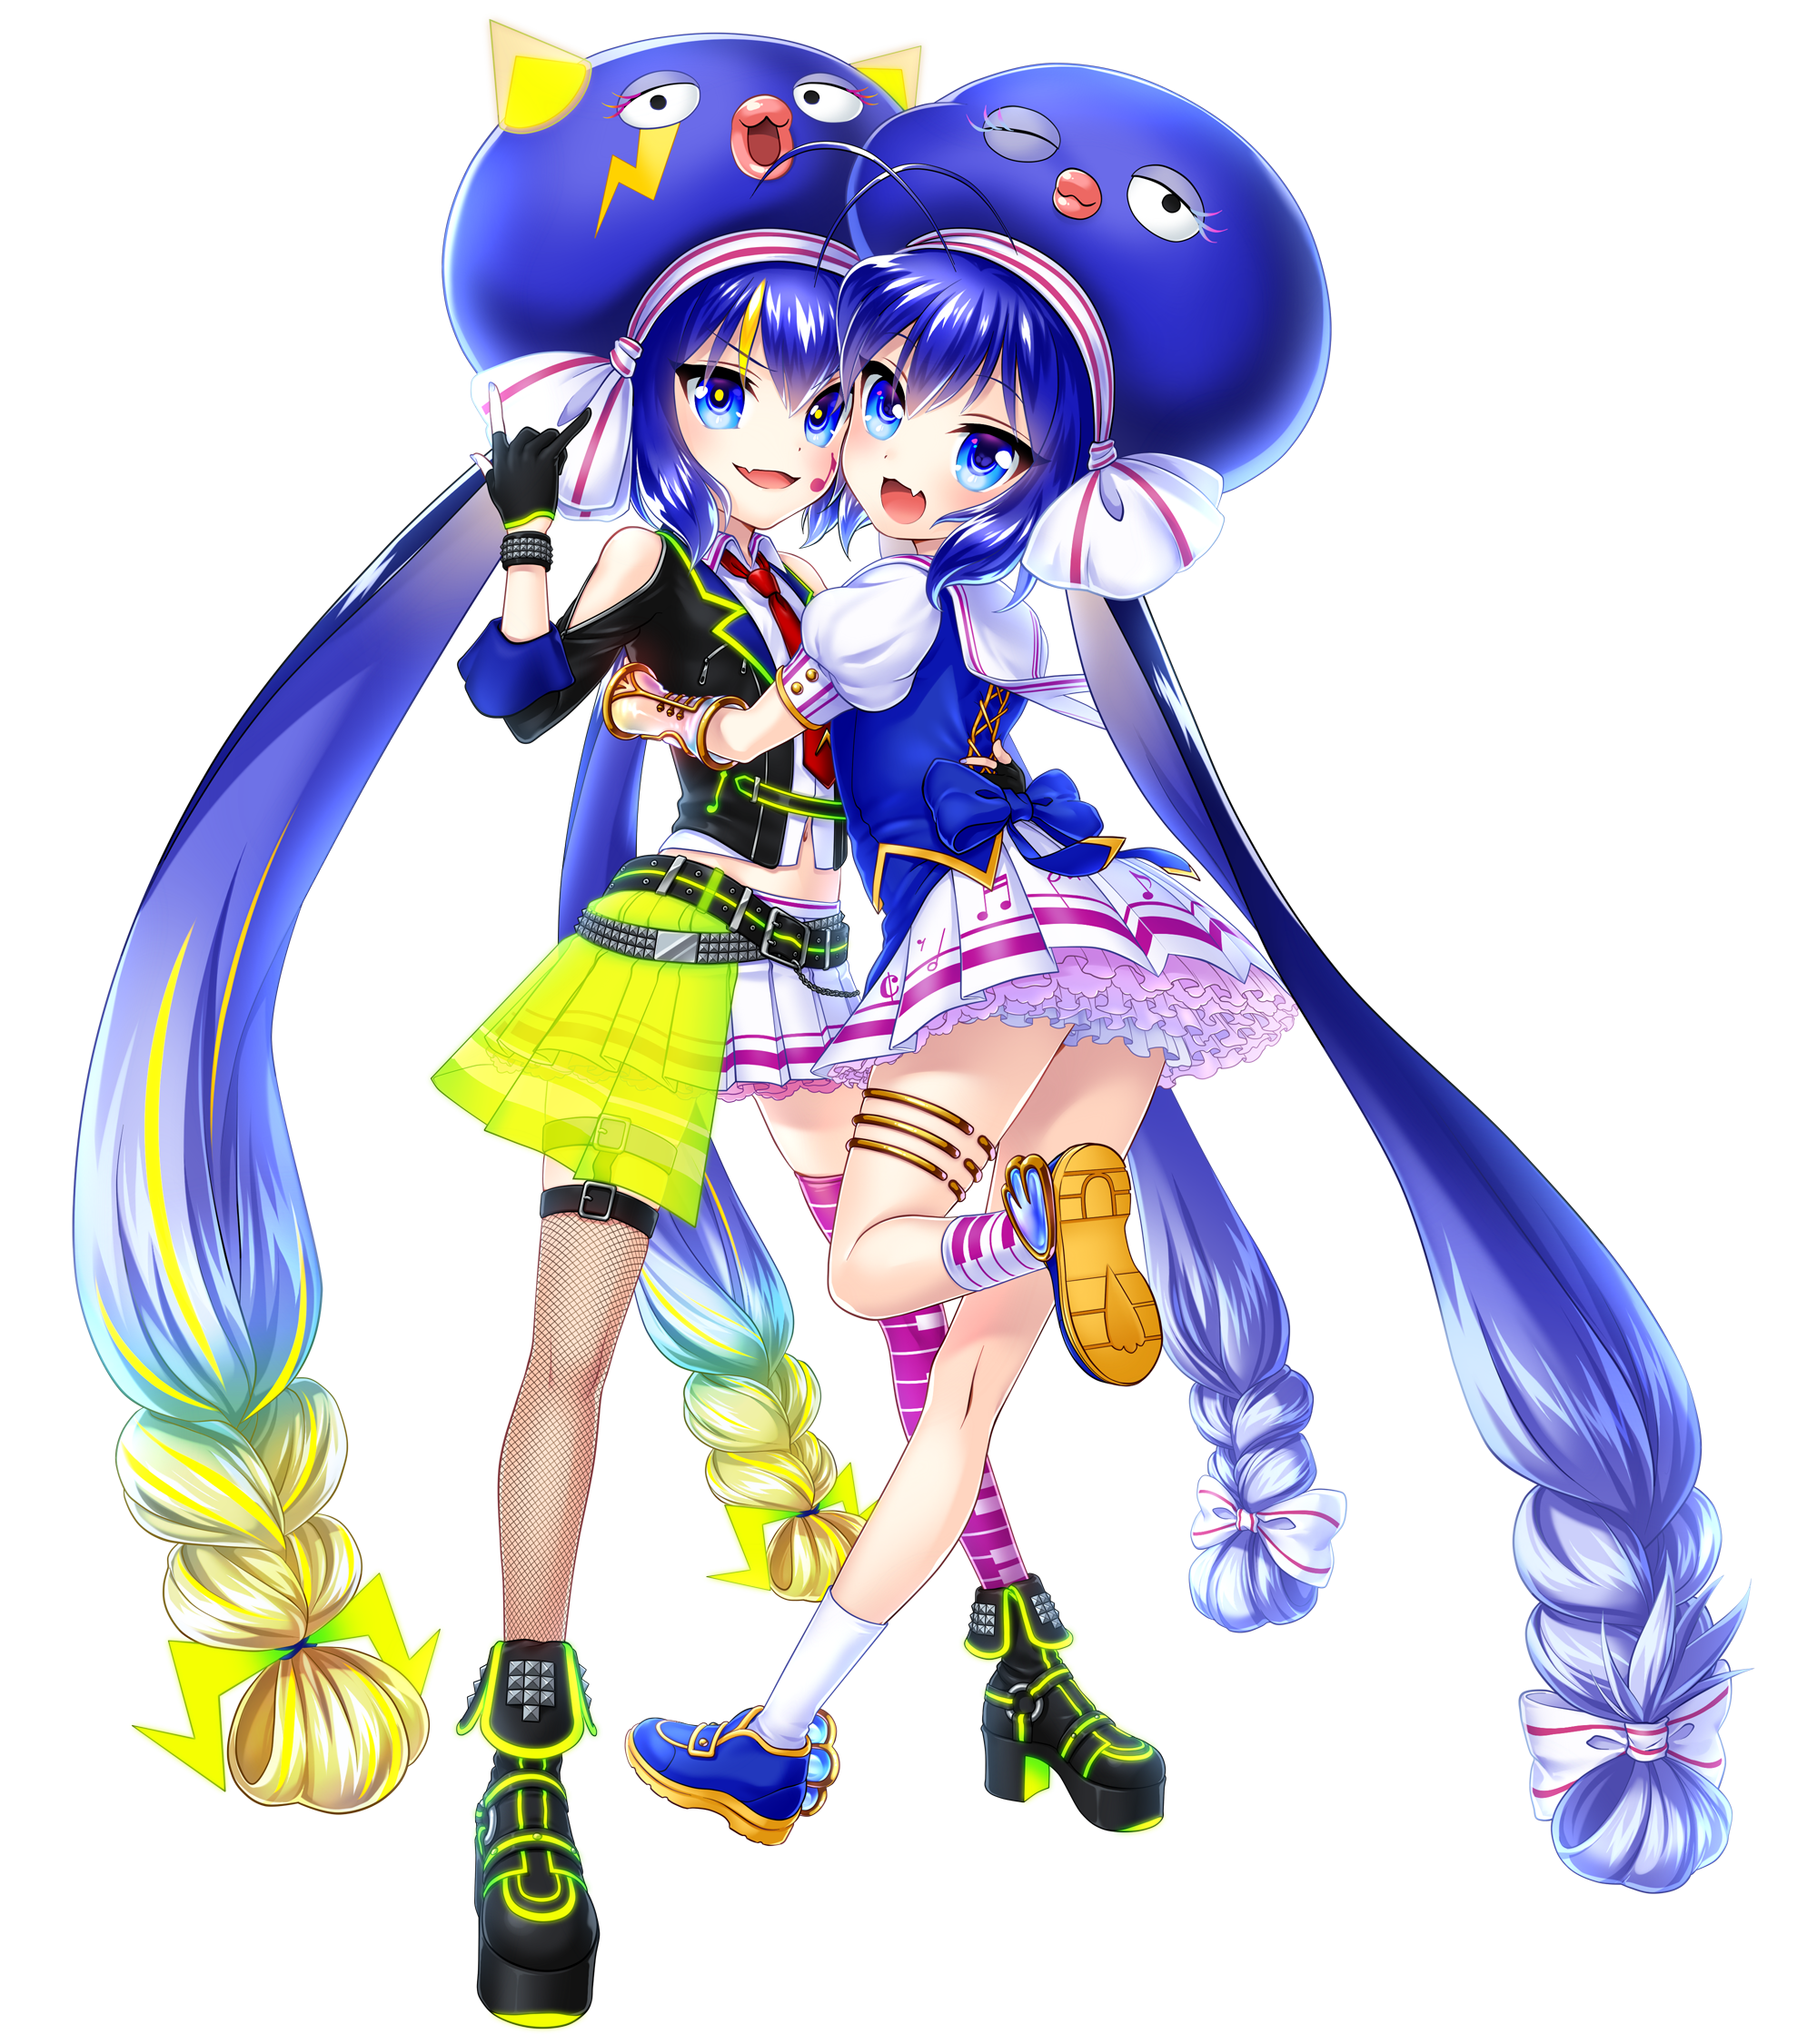 jpg transparent miku transparent character #99791483